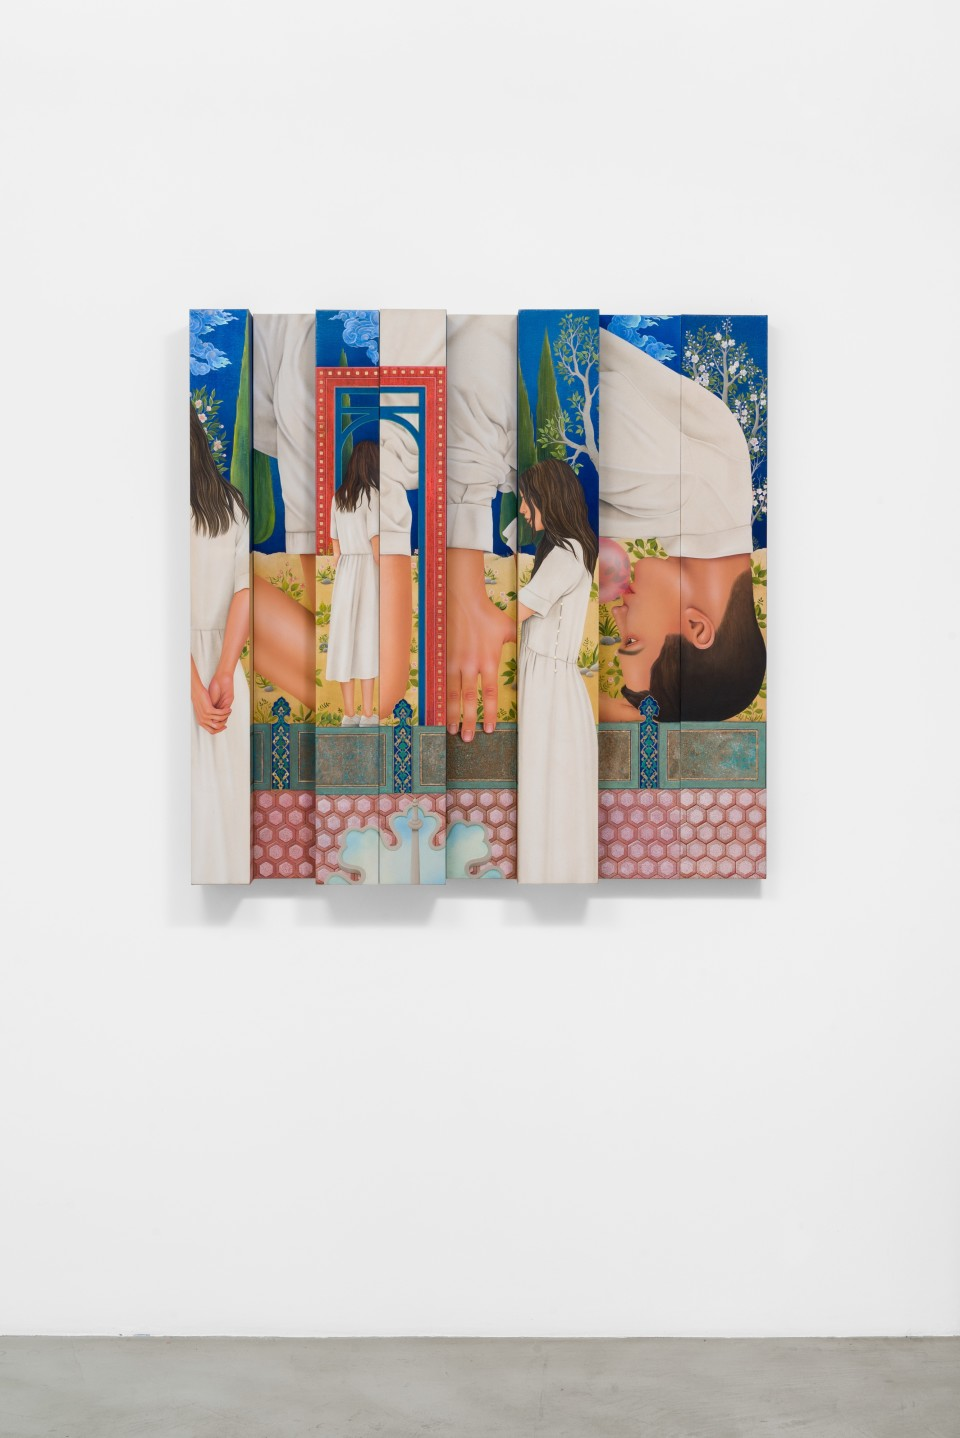 Image: Arghavan Khosravi  Parallel Lives (2), 2020  signed and dated verso  acrylic on canvas mounted on wood panels  45 3/8 x 45 3/8 x 6 inches (115.3 x 115.3 x 15.2 cm)